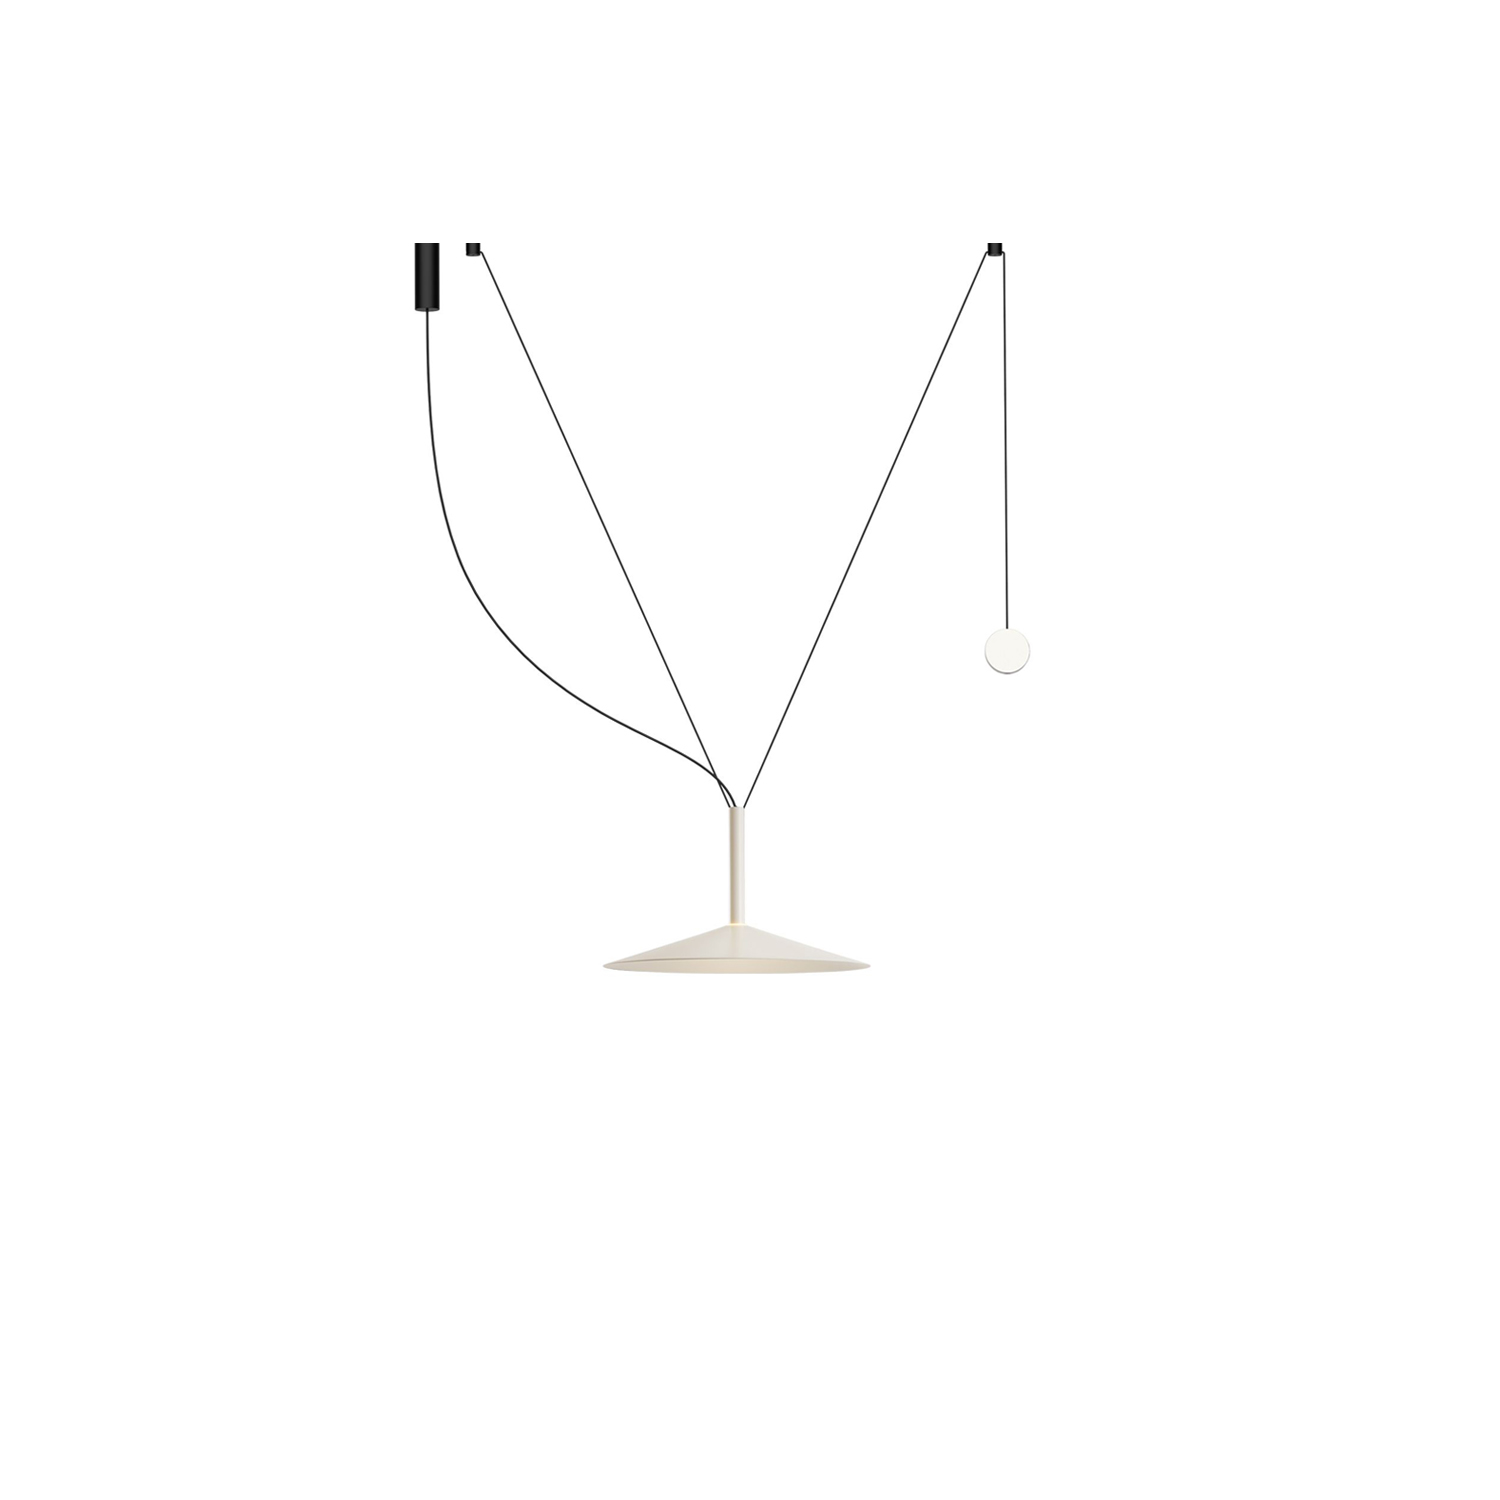 Milana 32 Counterweight Pendant Light - Tubular structure and lacquered aluminium shade with a translucid polycarbonate diffuser. Cable with a counterweight that allows moving the lamp throughout the space.  Moving the point of light, that's the idea behind the new design by Jaume Ramírez. Milana involves a system of modular suspension lamps that combine with one another and can be moved both vertically and horizontally.  Paradoxically, this new design starts by deconstructing the archetype of a lamp; by synthesizing it as much as possible, only a cylindrical body remains, suspended with a built-in LED. To this cylinder we can add different conical shades in oyster white, black, beige, grey or red, in several sizes. But most ingenious of all is that each of these lamps can have a simple counterweight such that when they are hung between two points, they can be moved.  An almost imperceptible lens covers the LED and distributes the light. If only the cylindrical lamp is used, the downward-directed light is impeccable, and when a shade is added, the light escapes, illuminating the lamp itself. This new lighting system gives the user control of the light, offering a new conceptual proposal.  Covering and baring lamps, moving them up, down and sideways. Mixing cylindrical shapes or combining them with decorative lamps. Milana lets you create countless compositions, a symphony of light. | Matter of Stuff